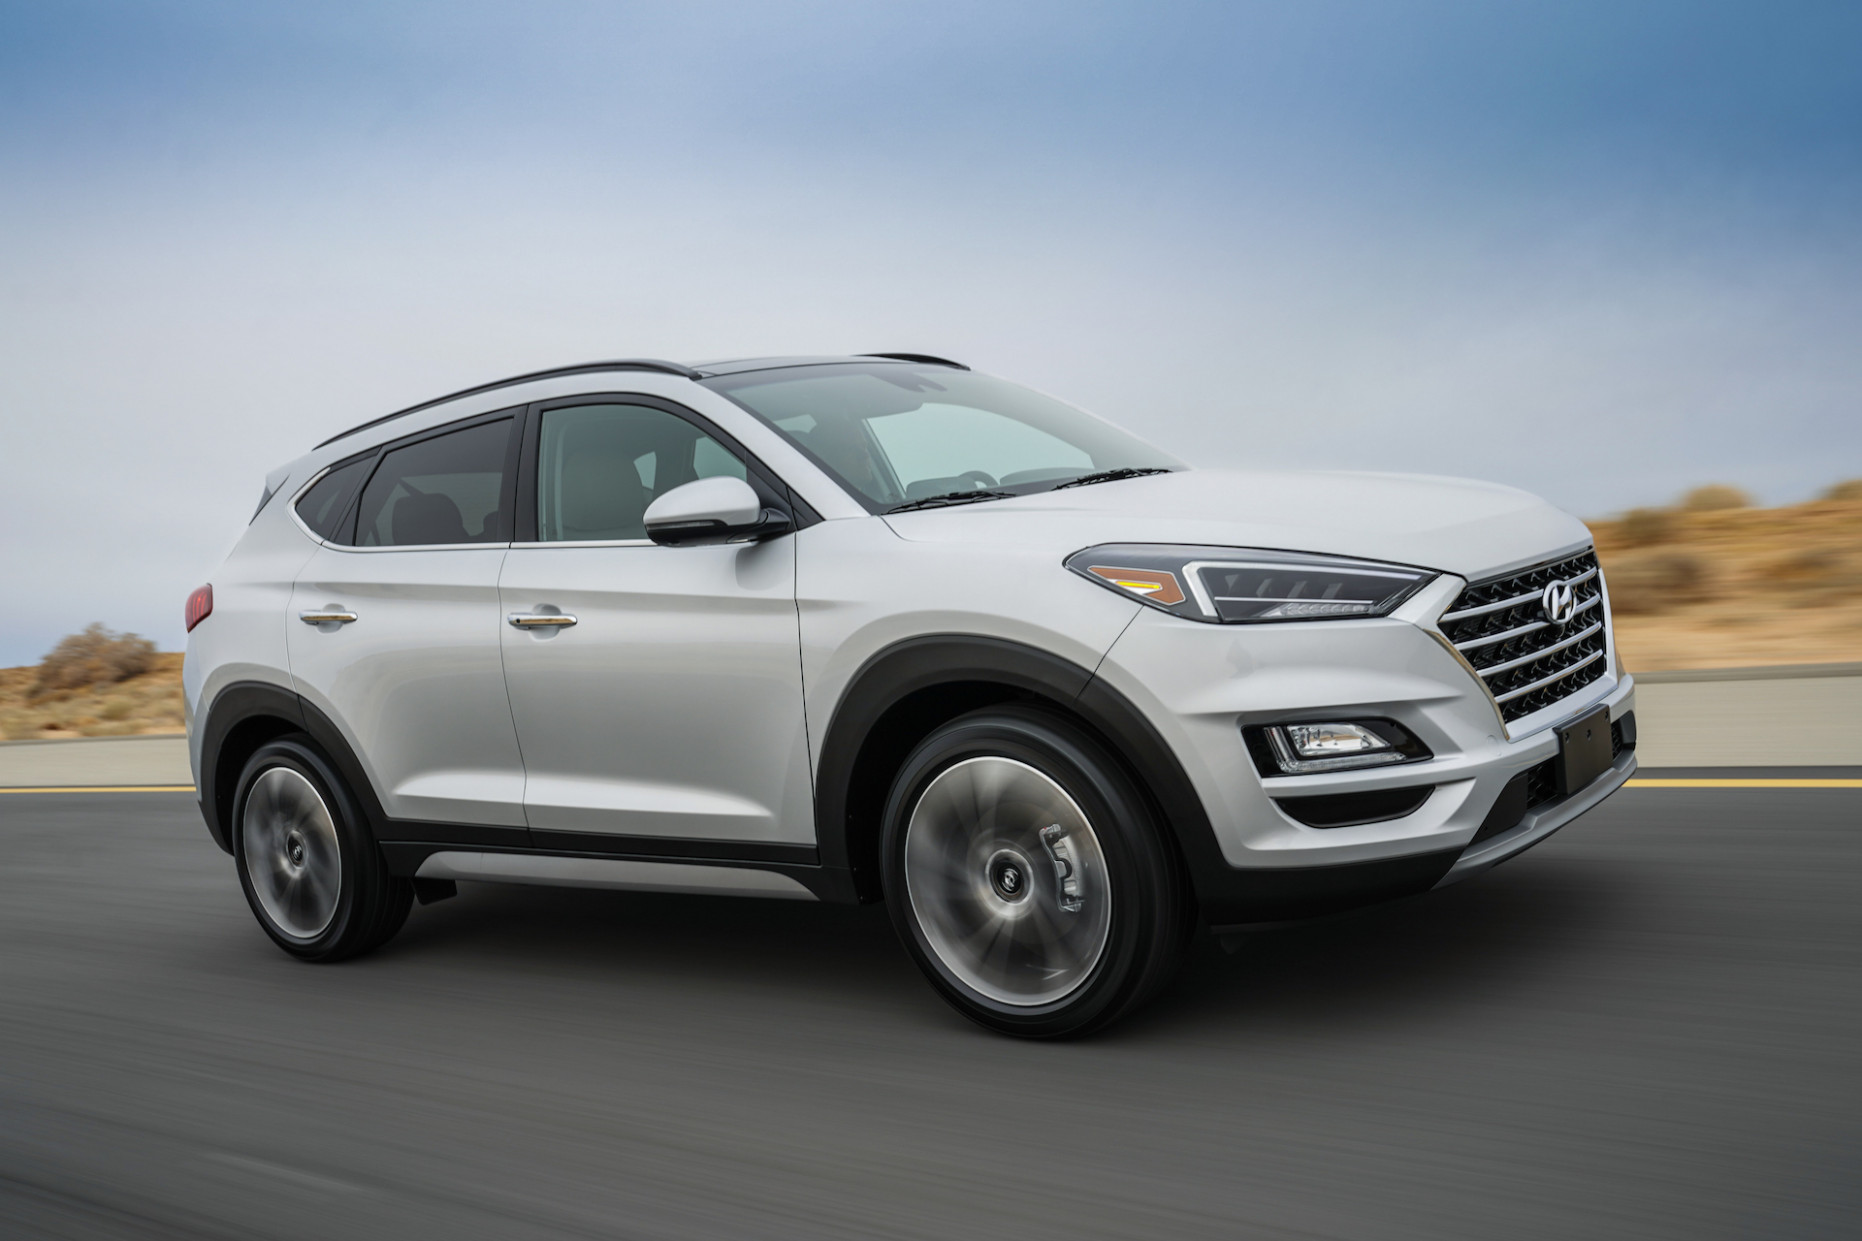 7 Hyundai Tucson Review, Ratings, Specs, Prices, and Photos ..